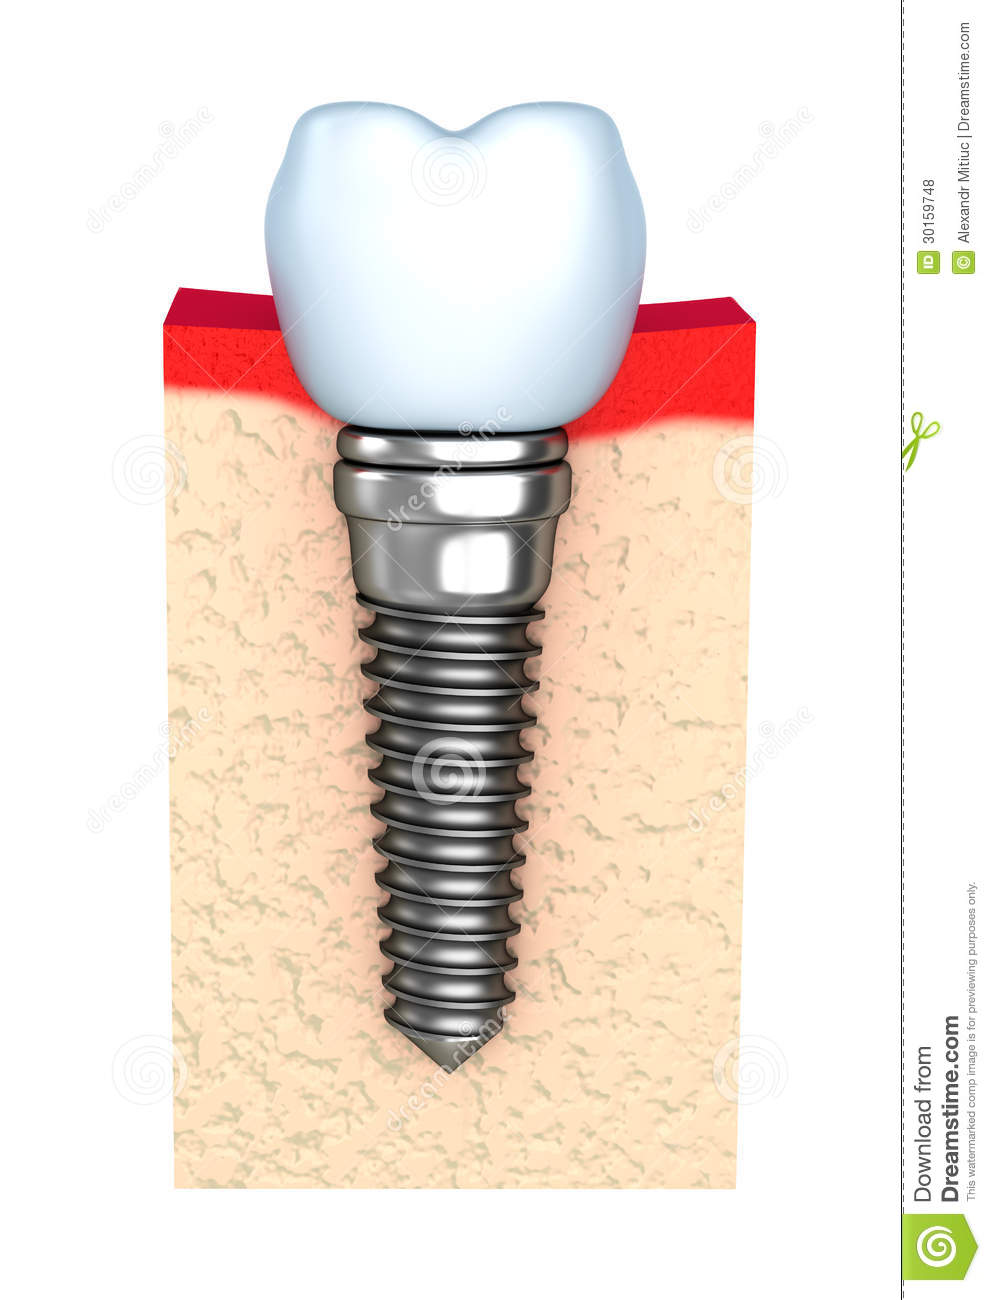 Tand implant in kaakbeen